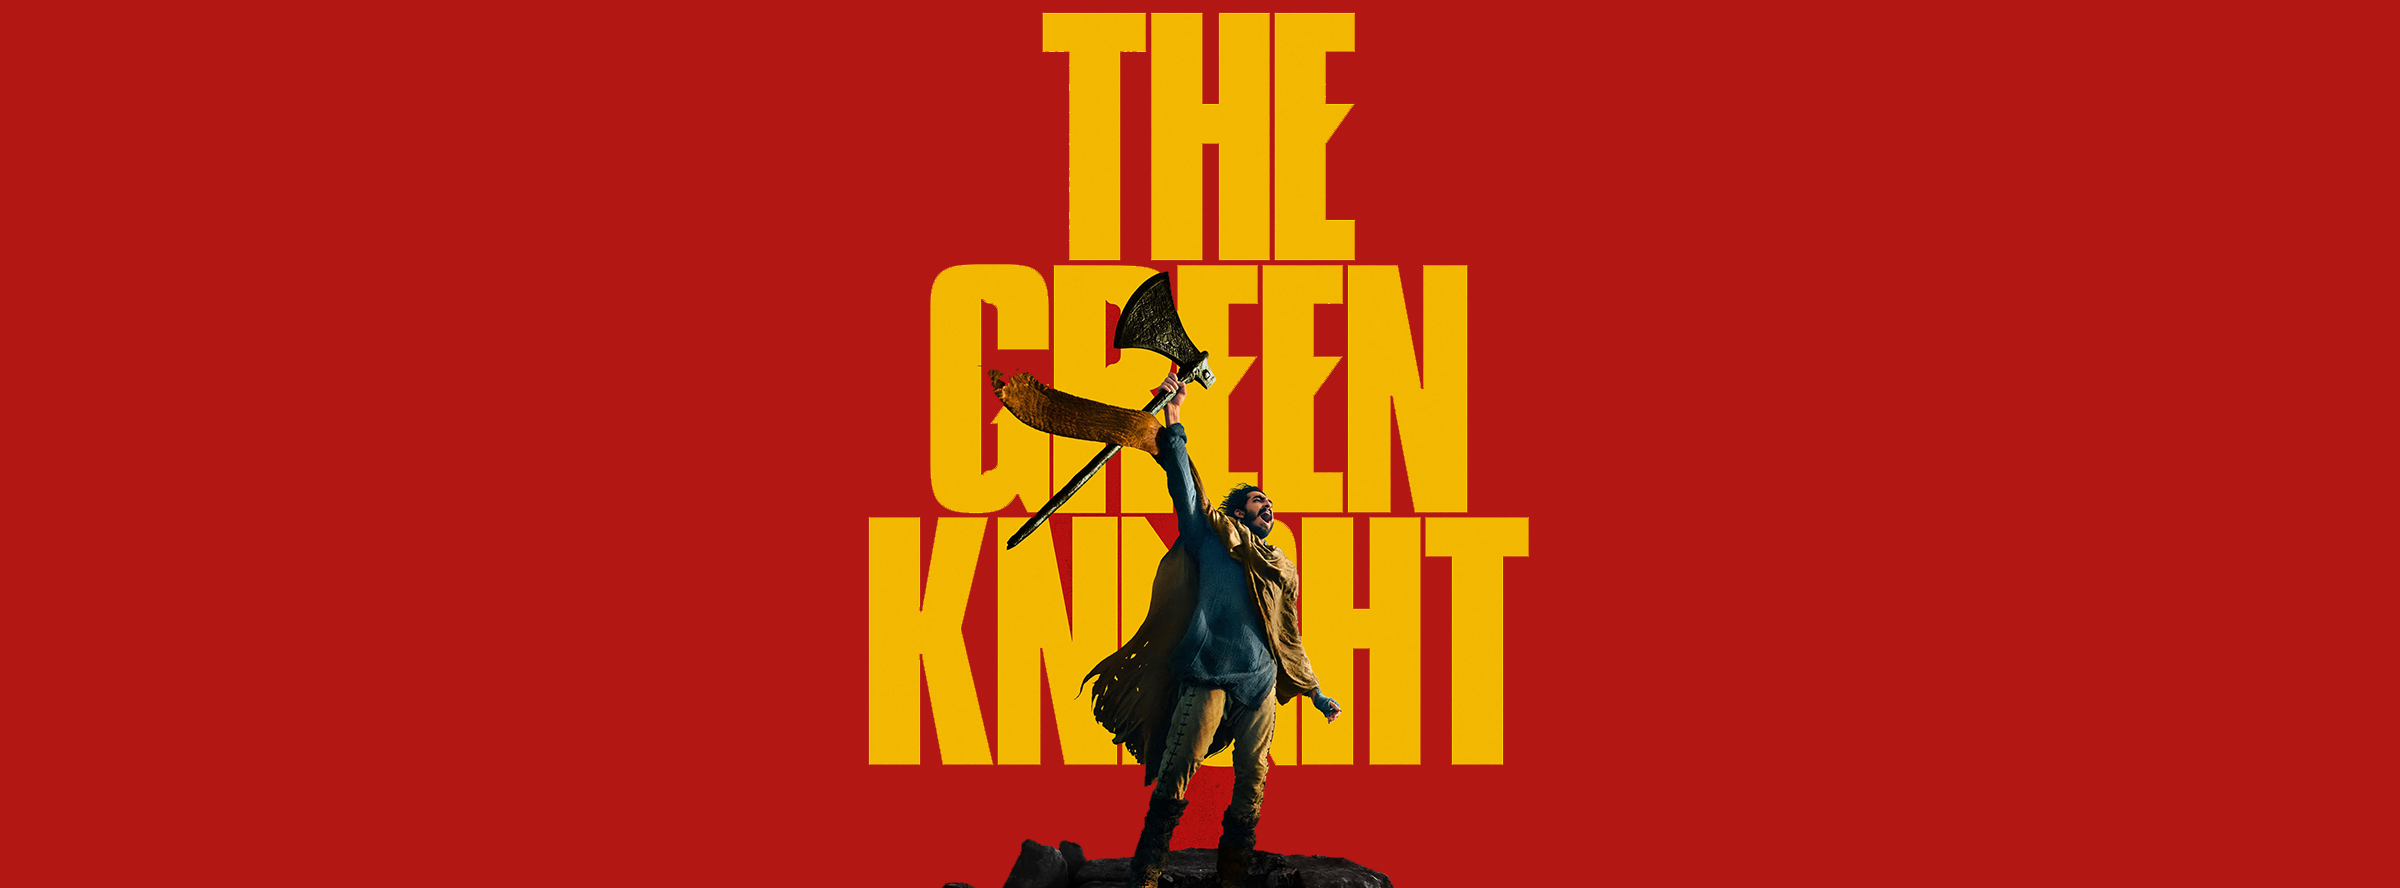 Slider Image for The Green Knight